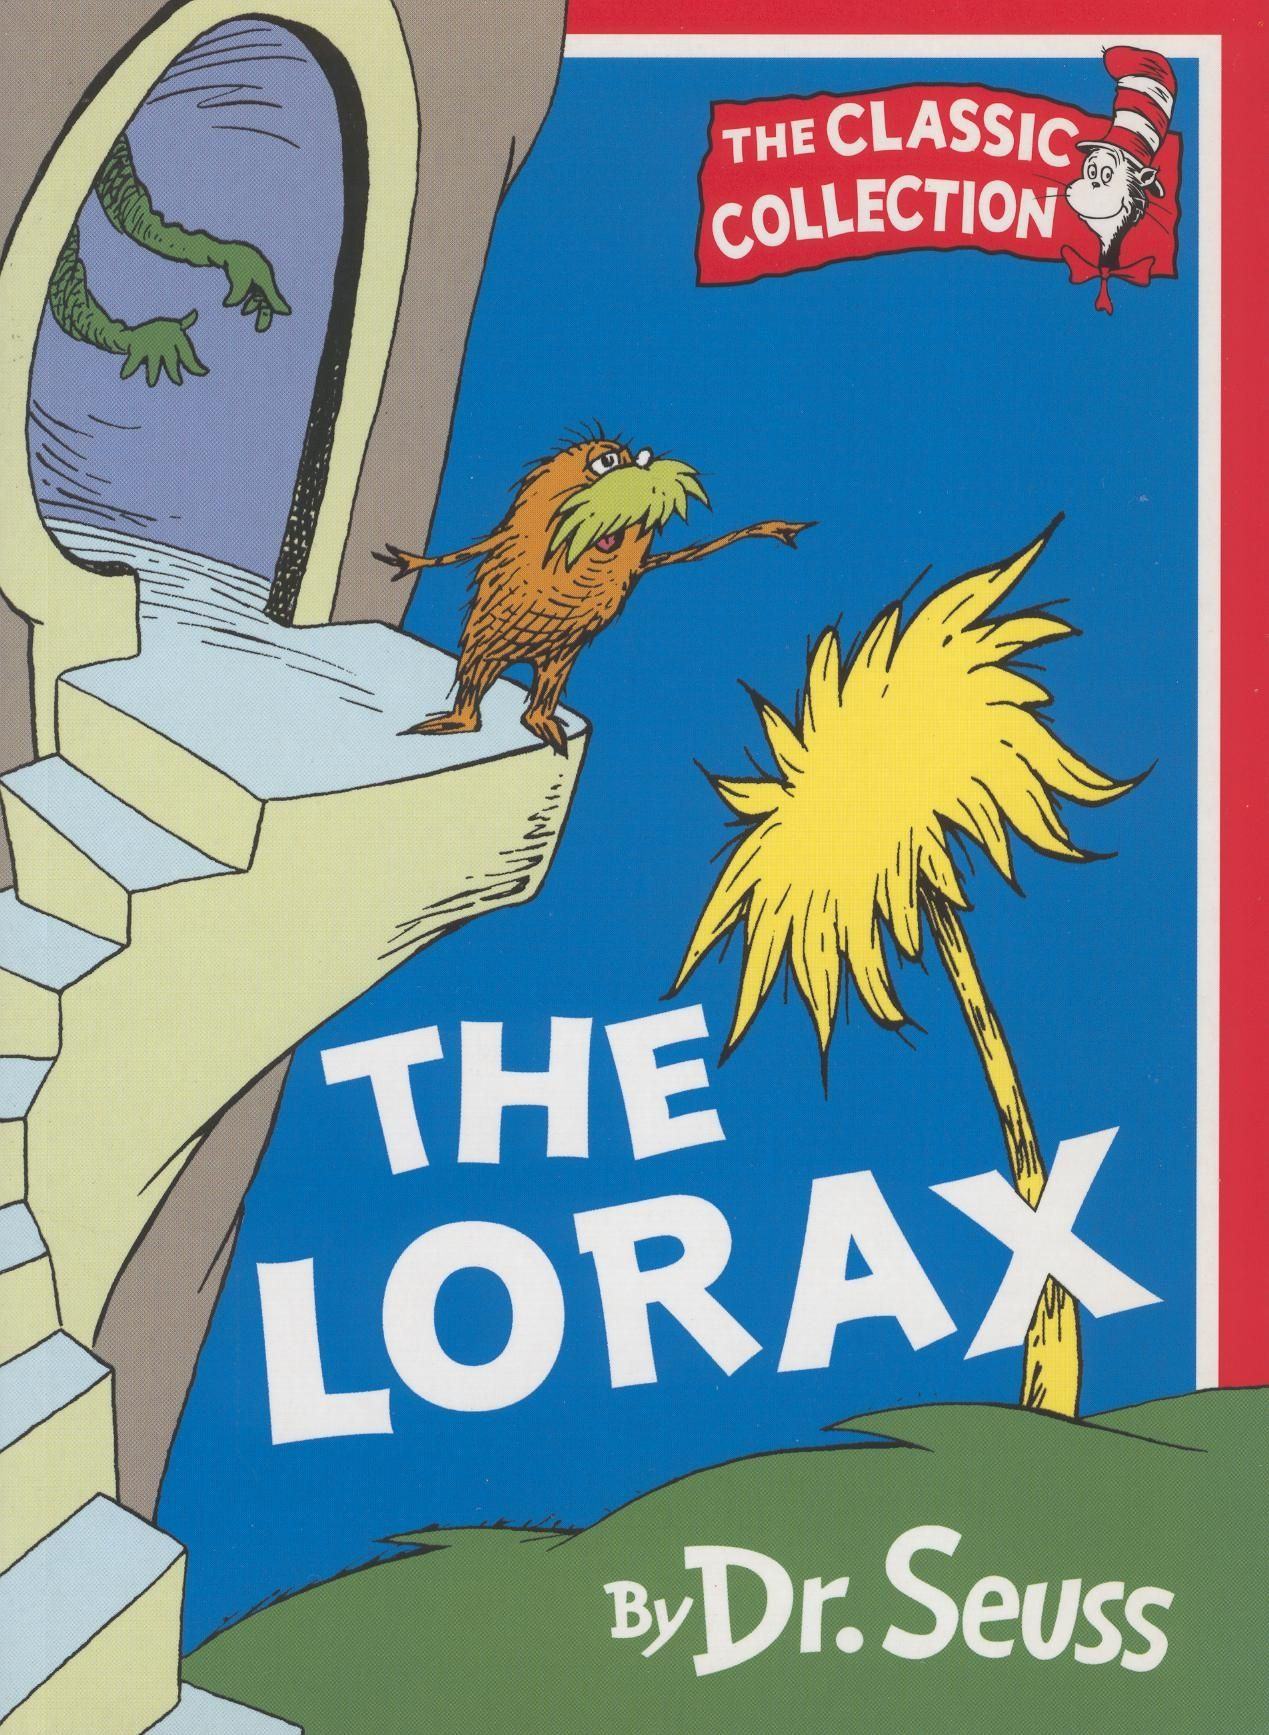 an analysis of the global disaster in the book the lorax by dr seuss How does the once-ler feel about what his thneed business did to the lorax and friends dr seuss used bright colors on some pages of the book and dull colors on others.